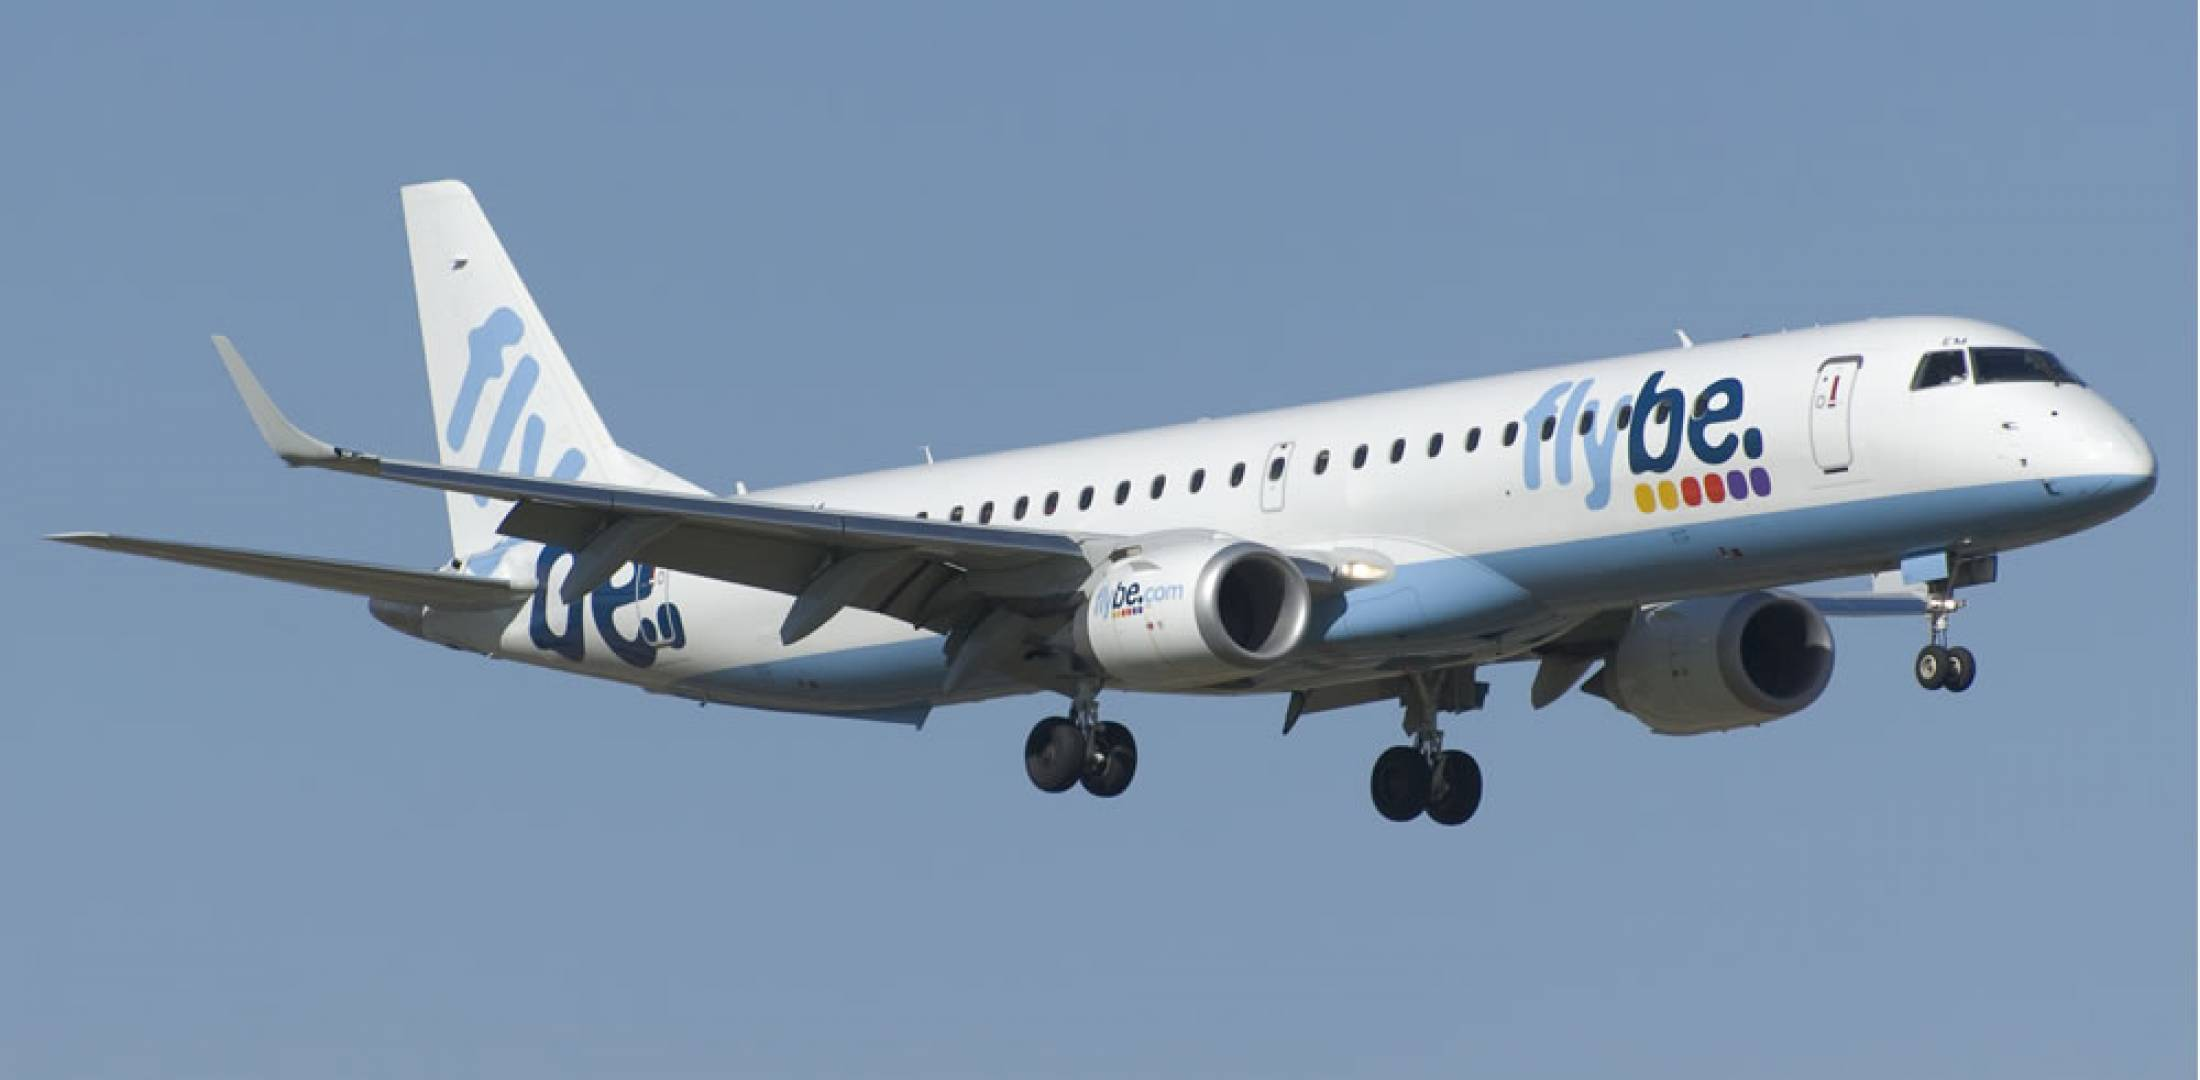 Flybe Embraer 195 will no longer be operated